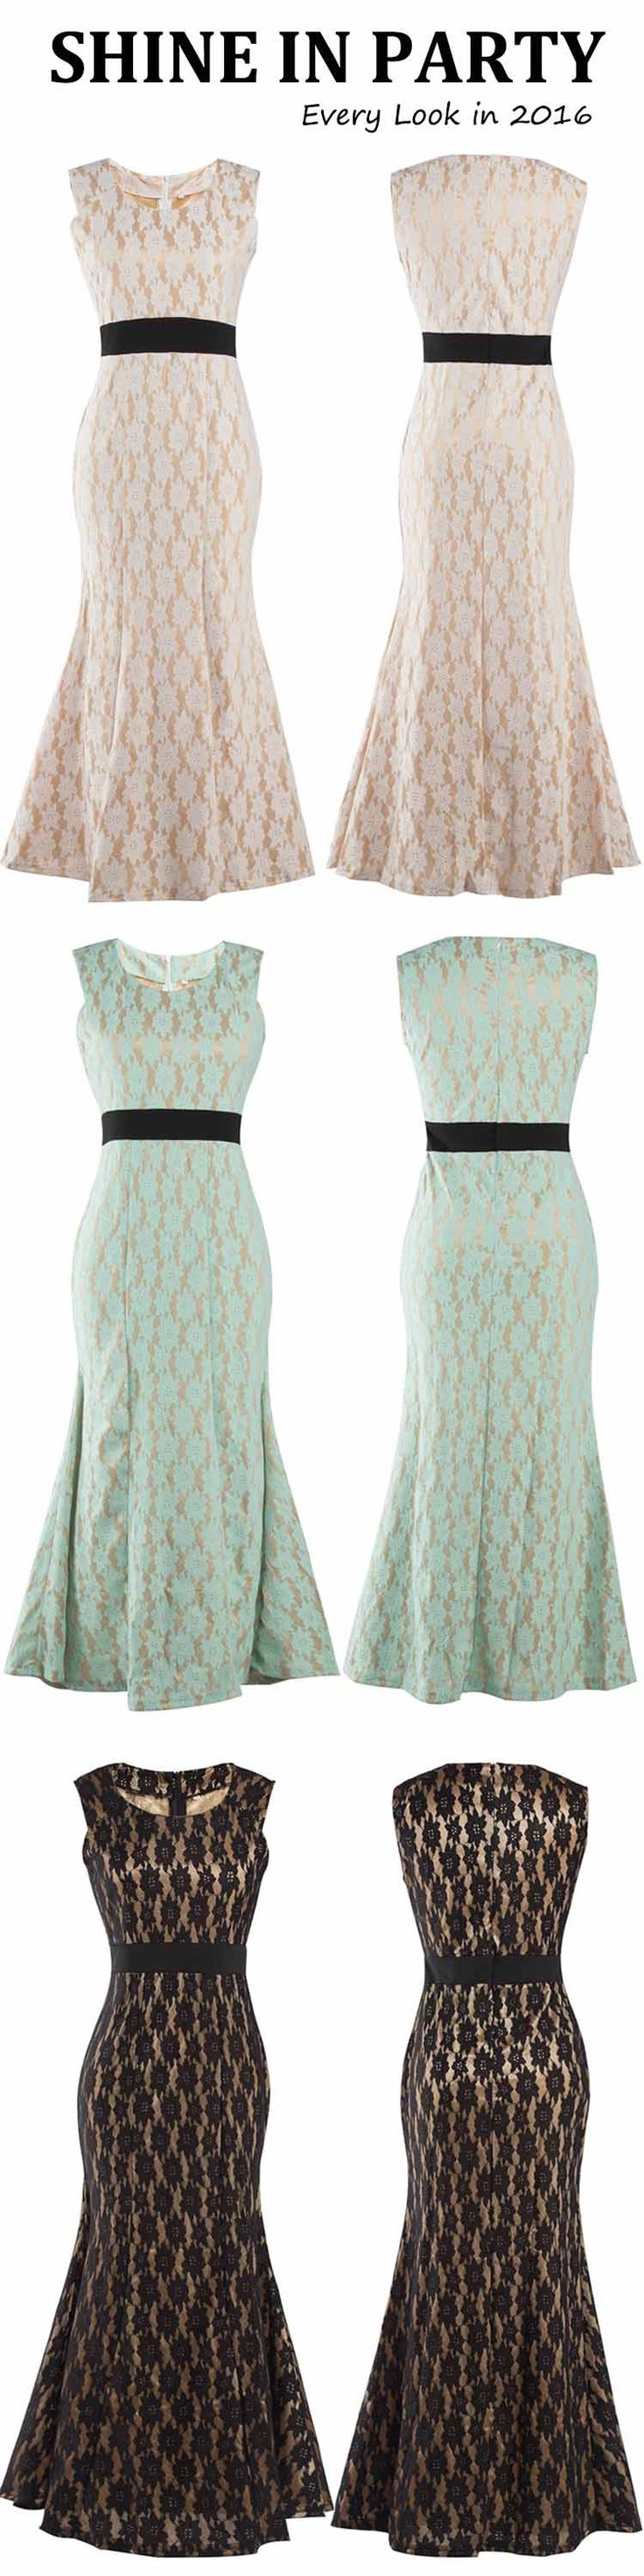 Take short time now & $24.99 to get this fishtail maxi dress! Its mermaid style suits for many occasions in the holiday. Can't wait to get it at Cupshe.com !